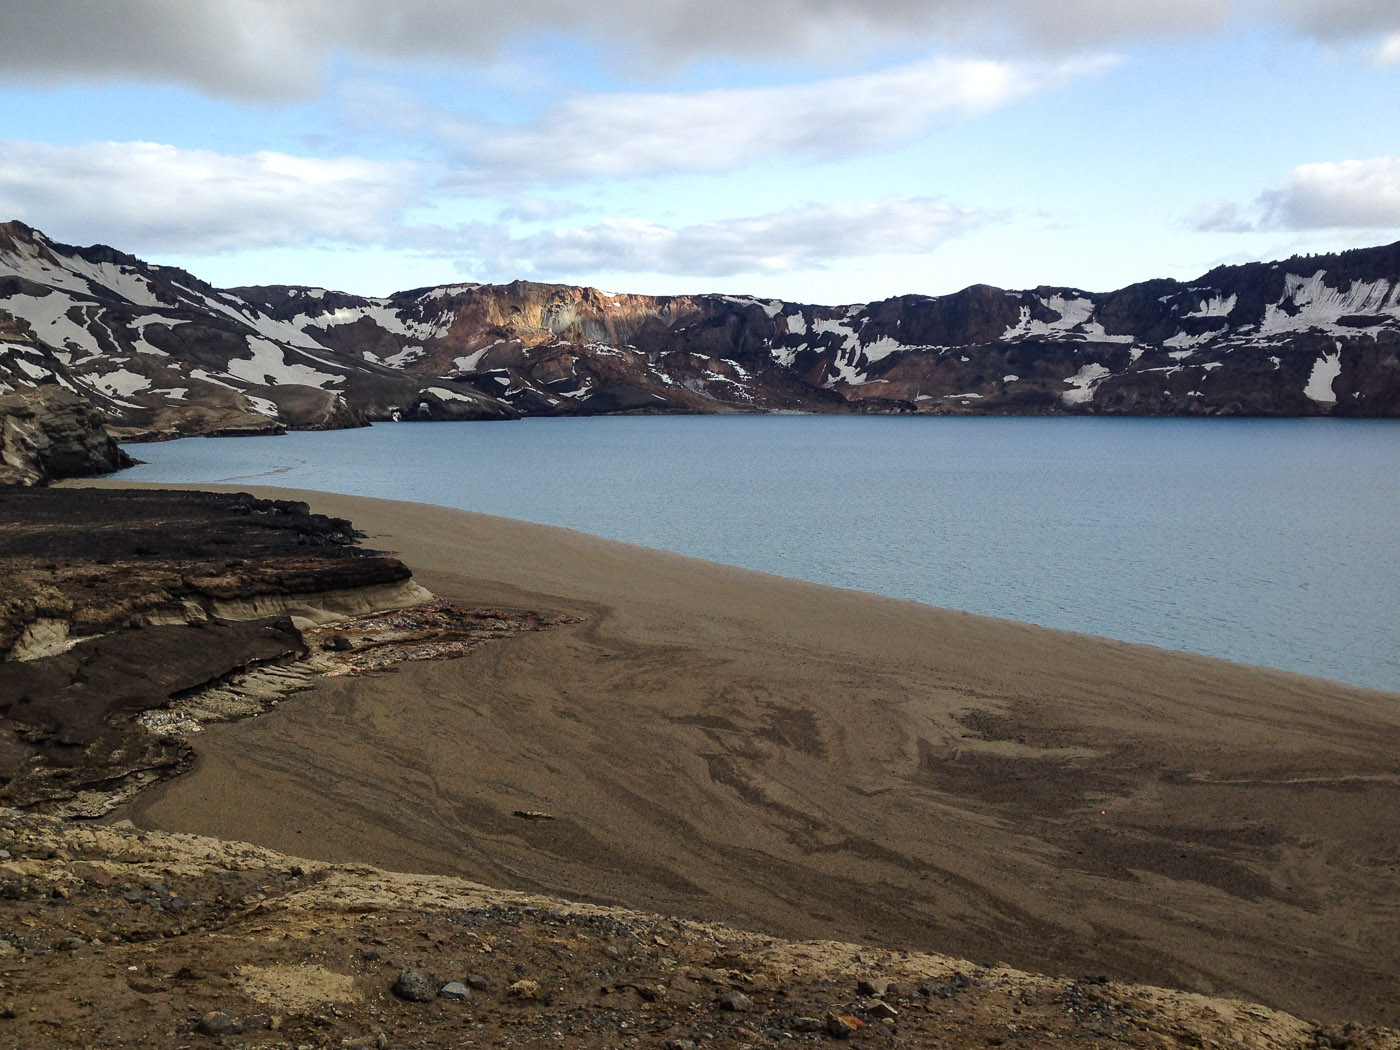 Northern Iceland - On the way to Askja. On vacation. - Lake Öskjuvatn. III. It is not a beach ... (24 July 2014)